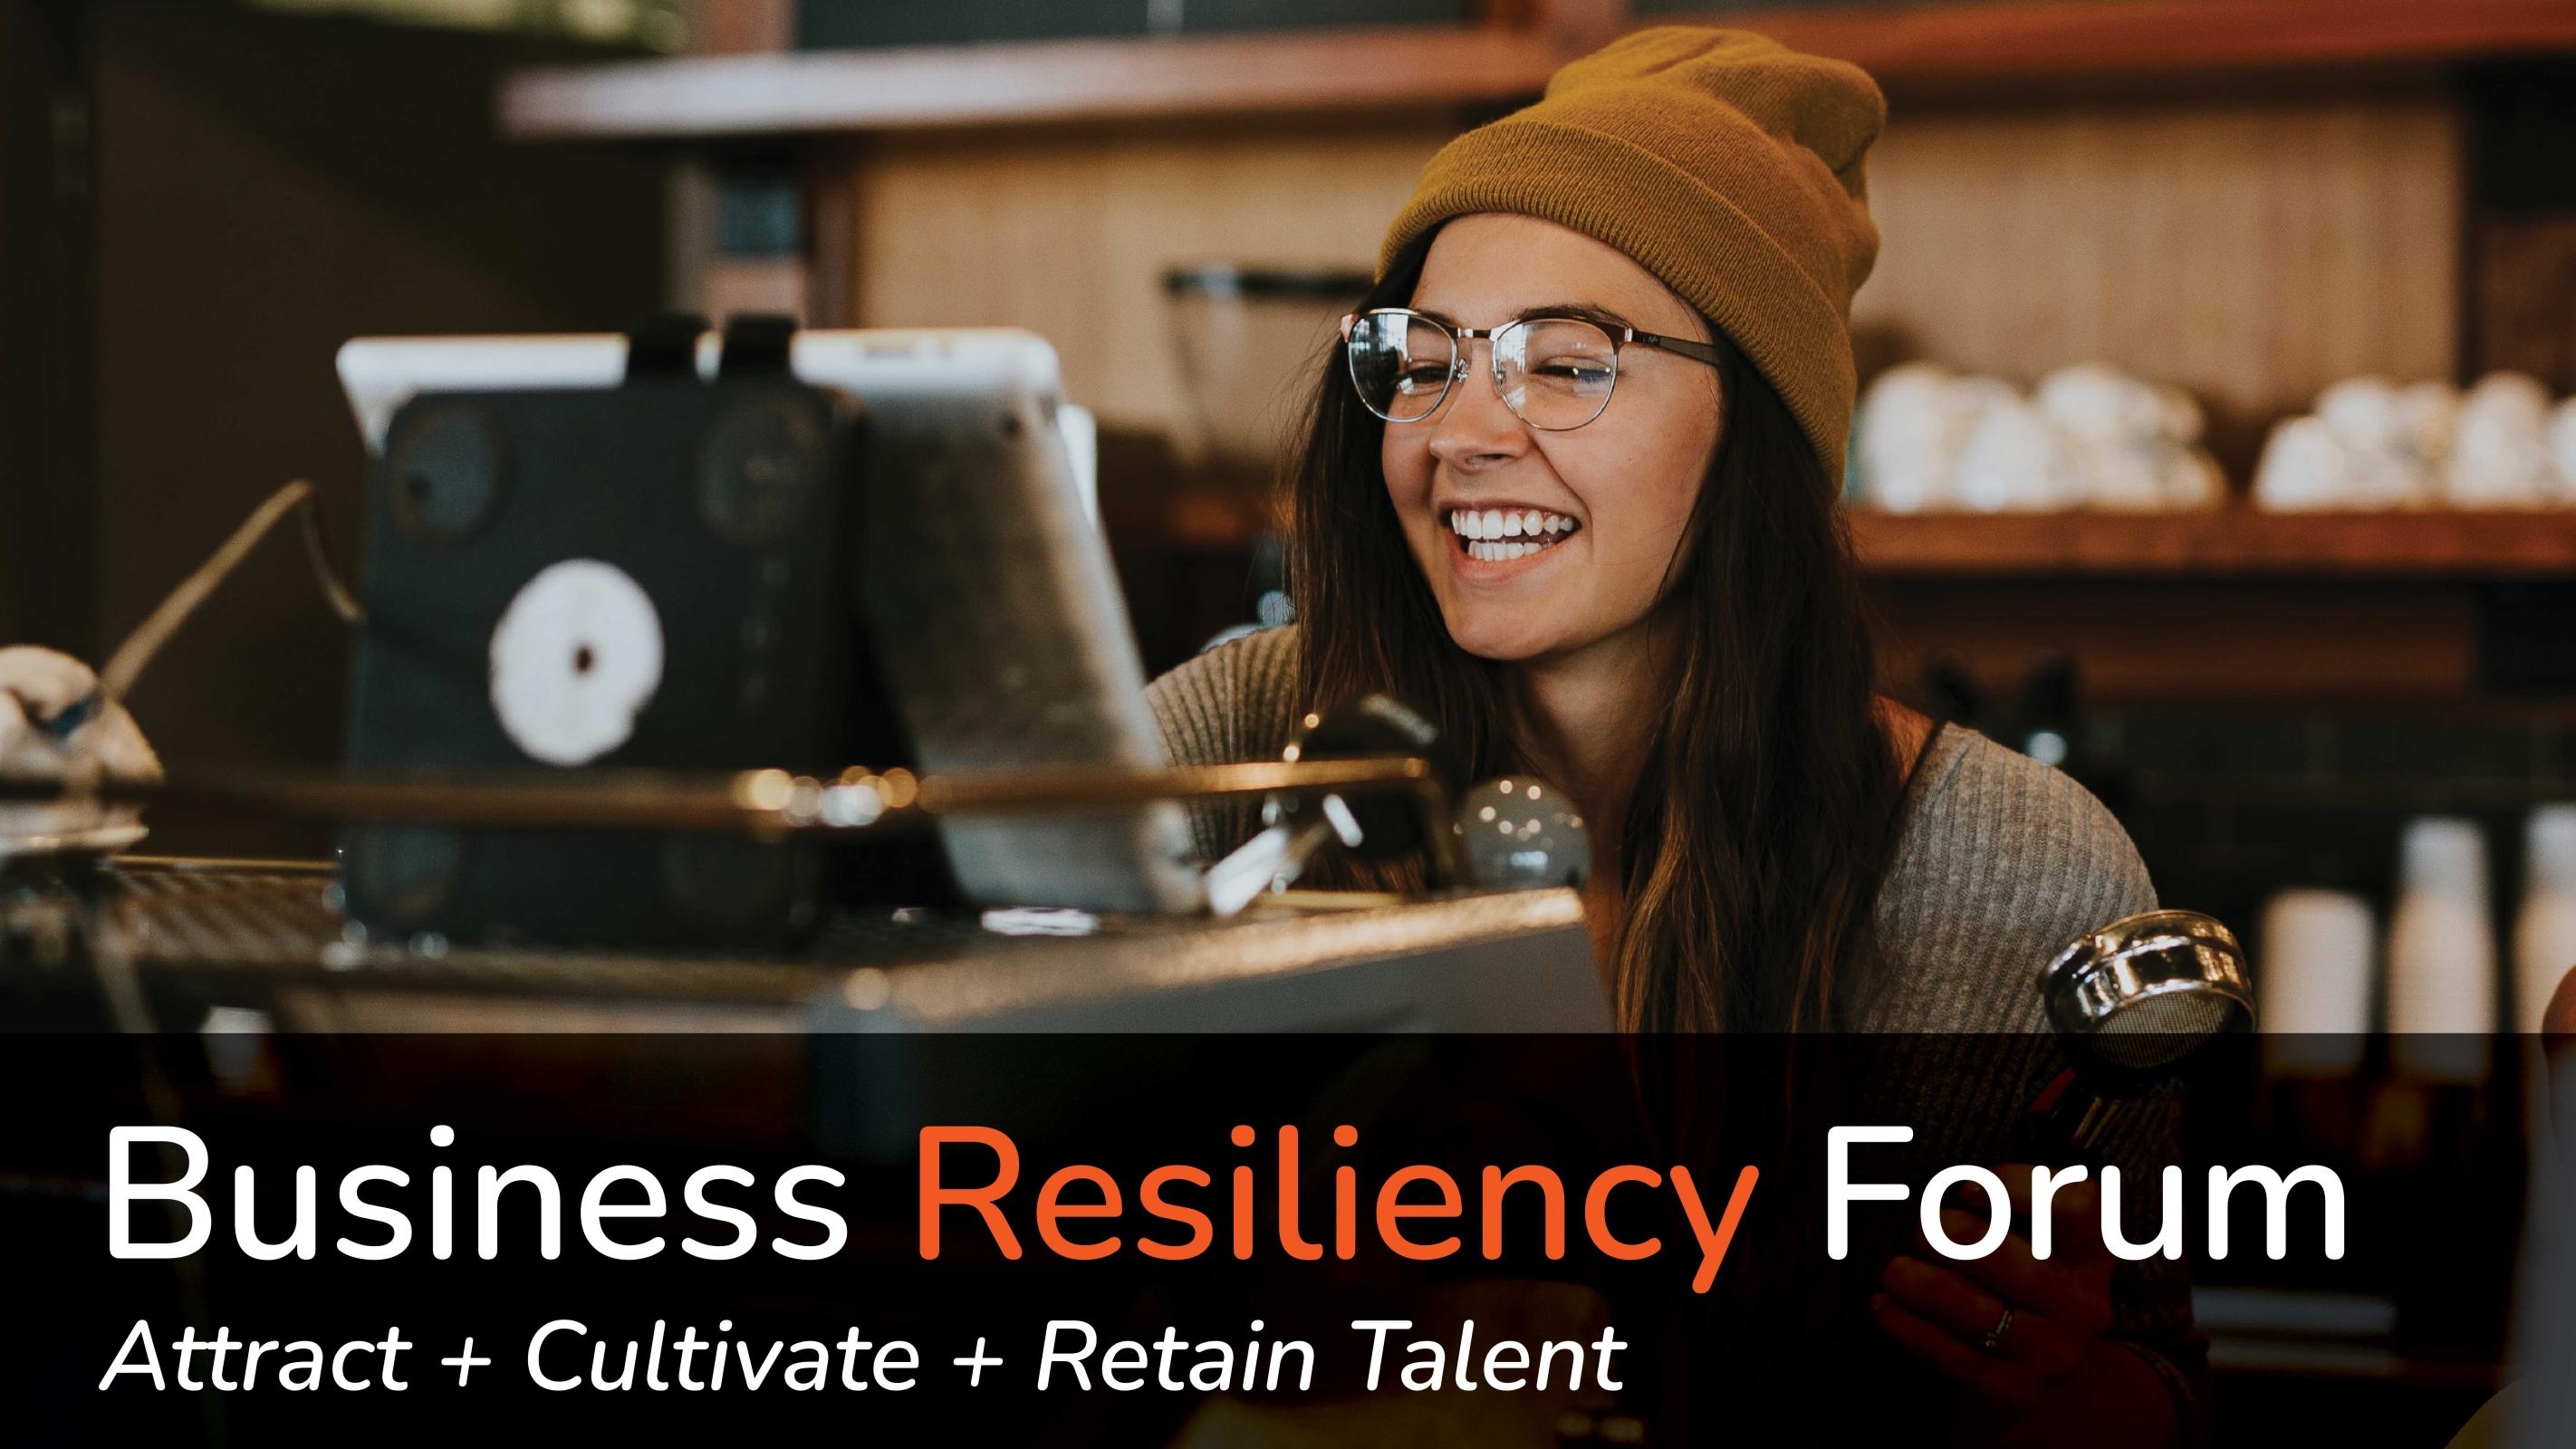 Event Promo Photo For Business Resiliency Forum